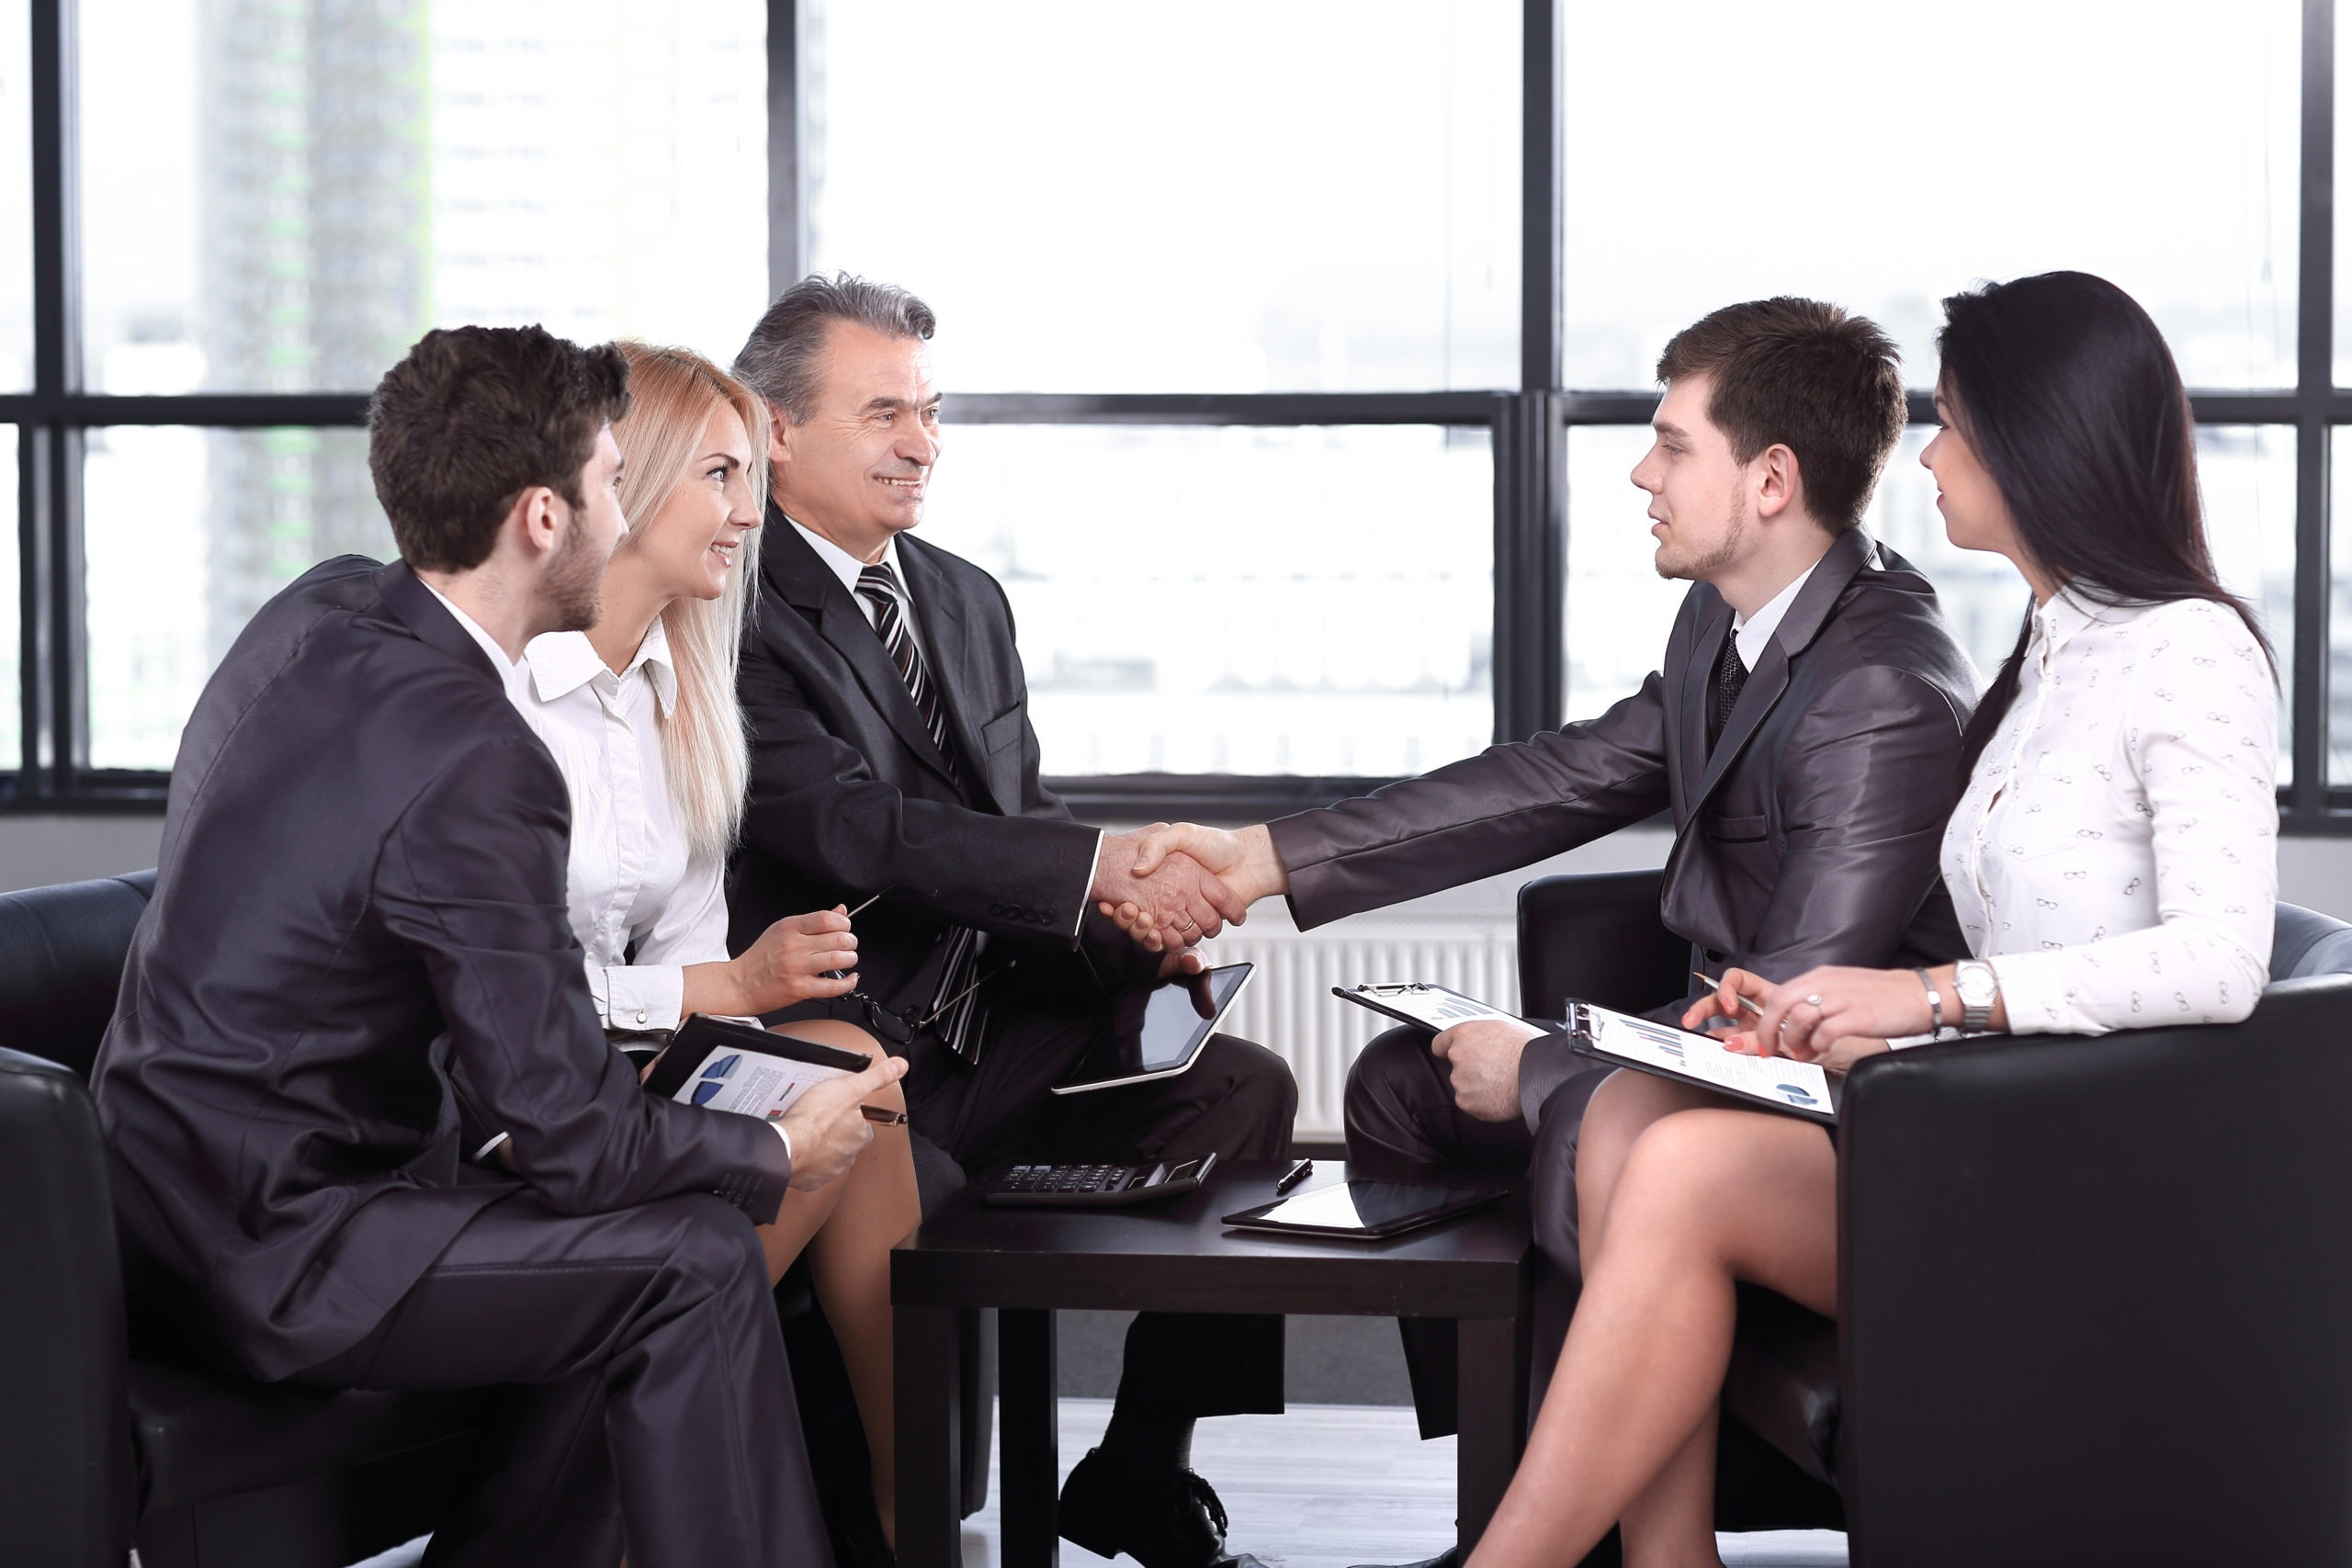 employees look at the handshake of business partners scaled